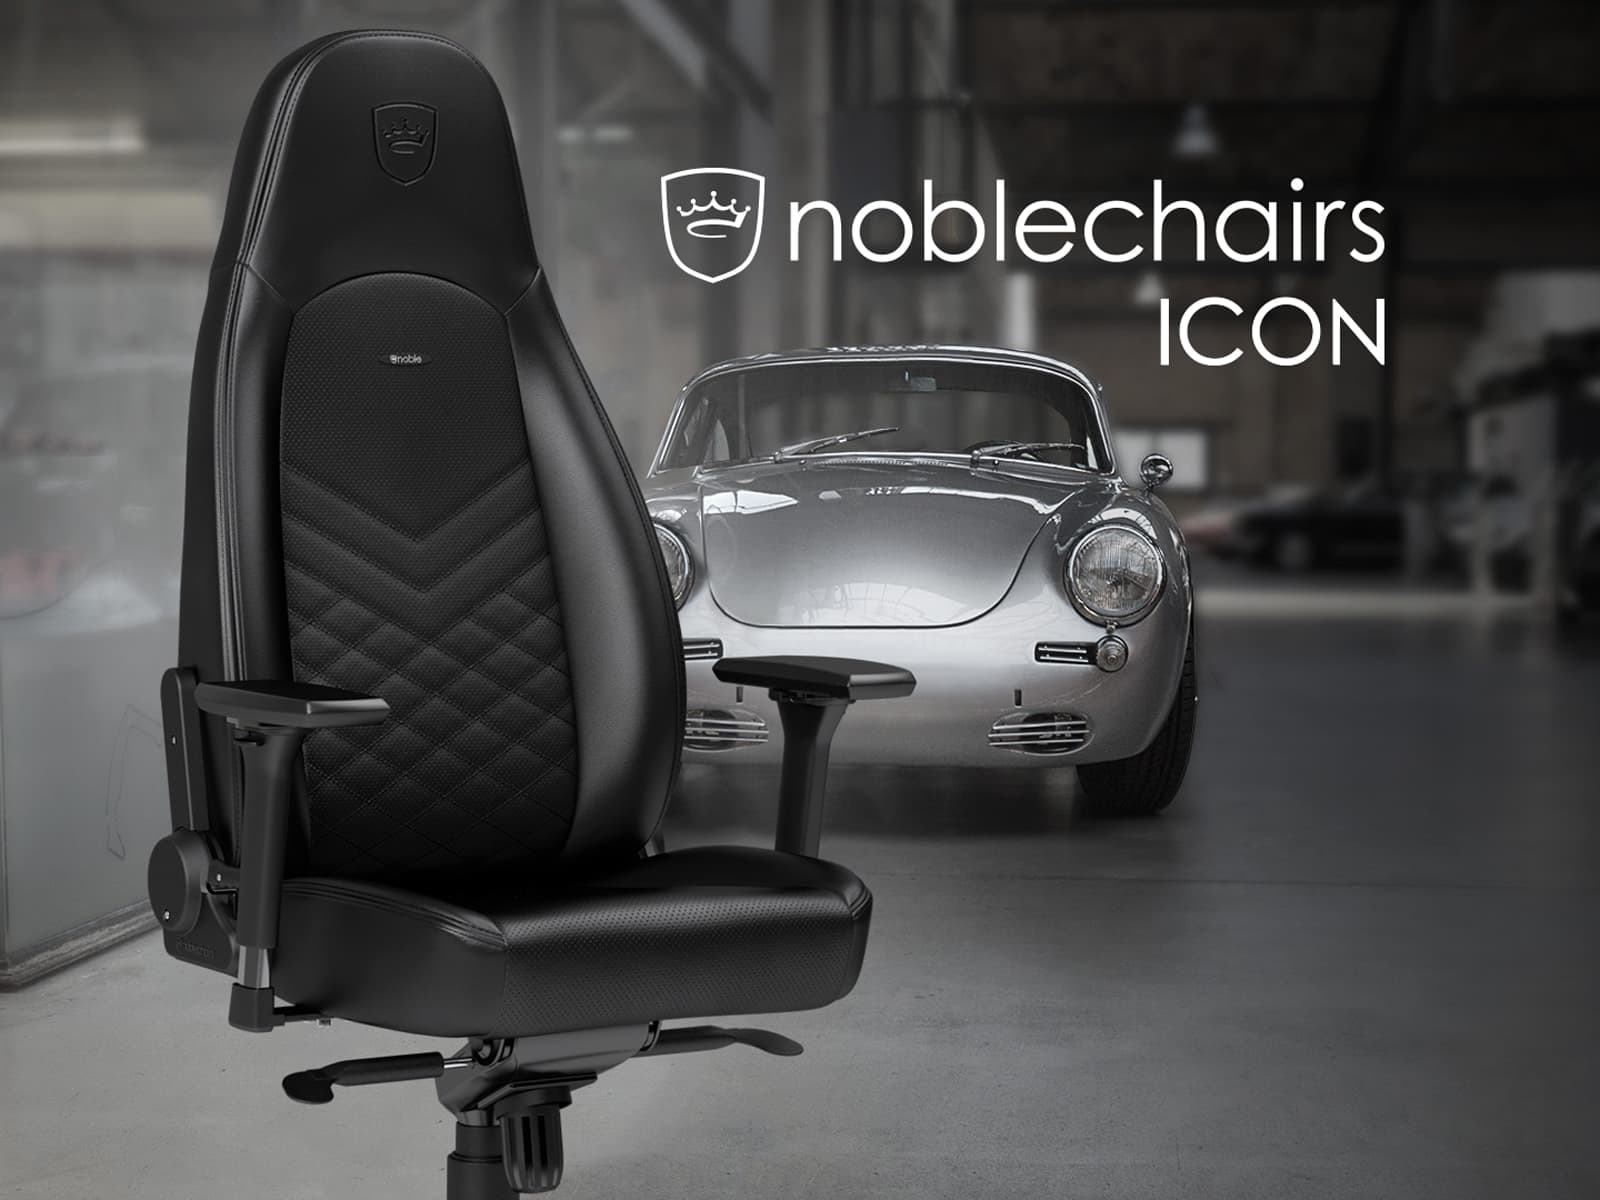 noblechairs-ICON-BK-image-07